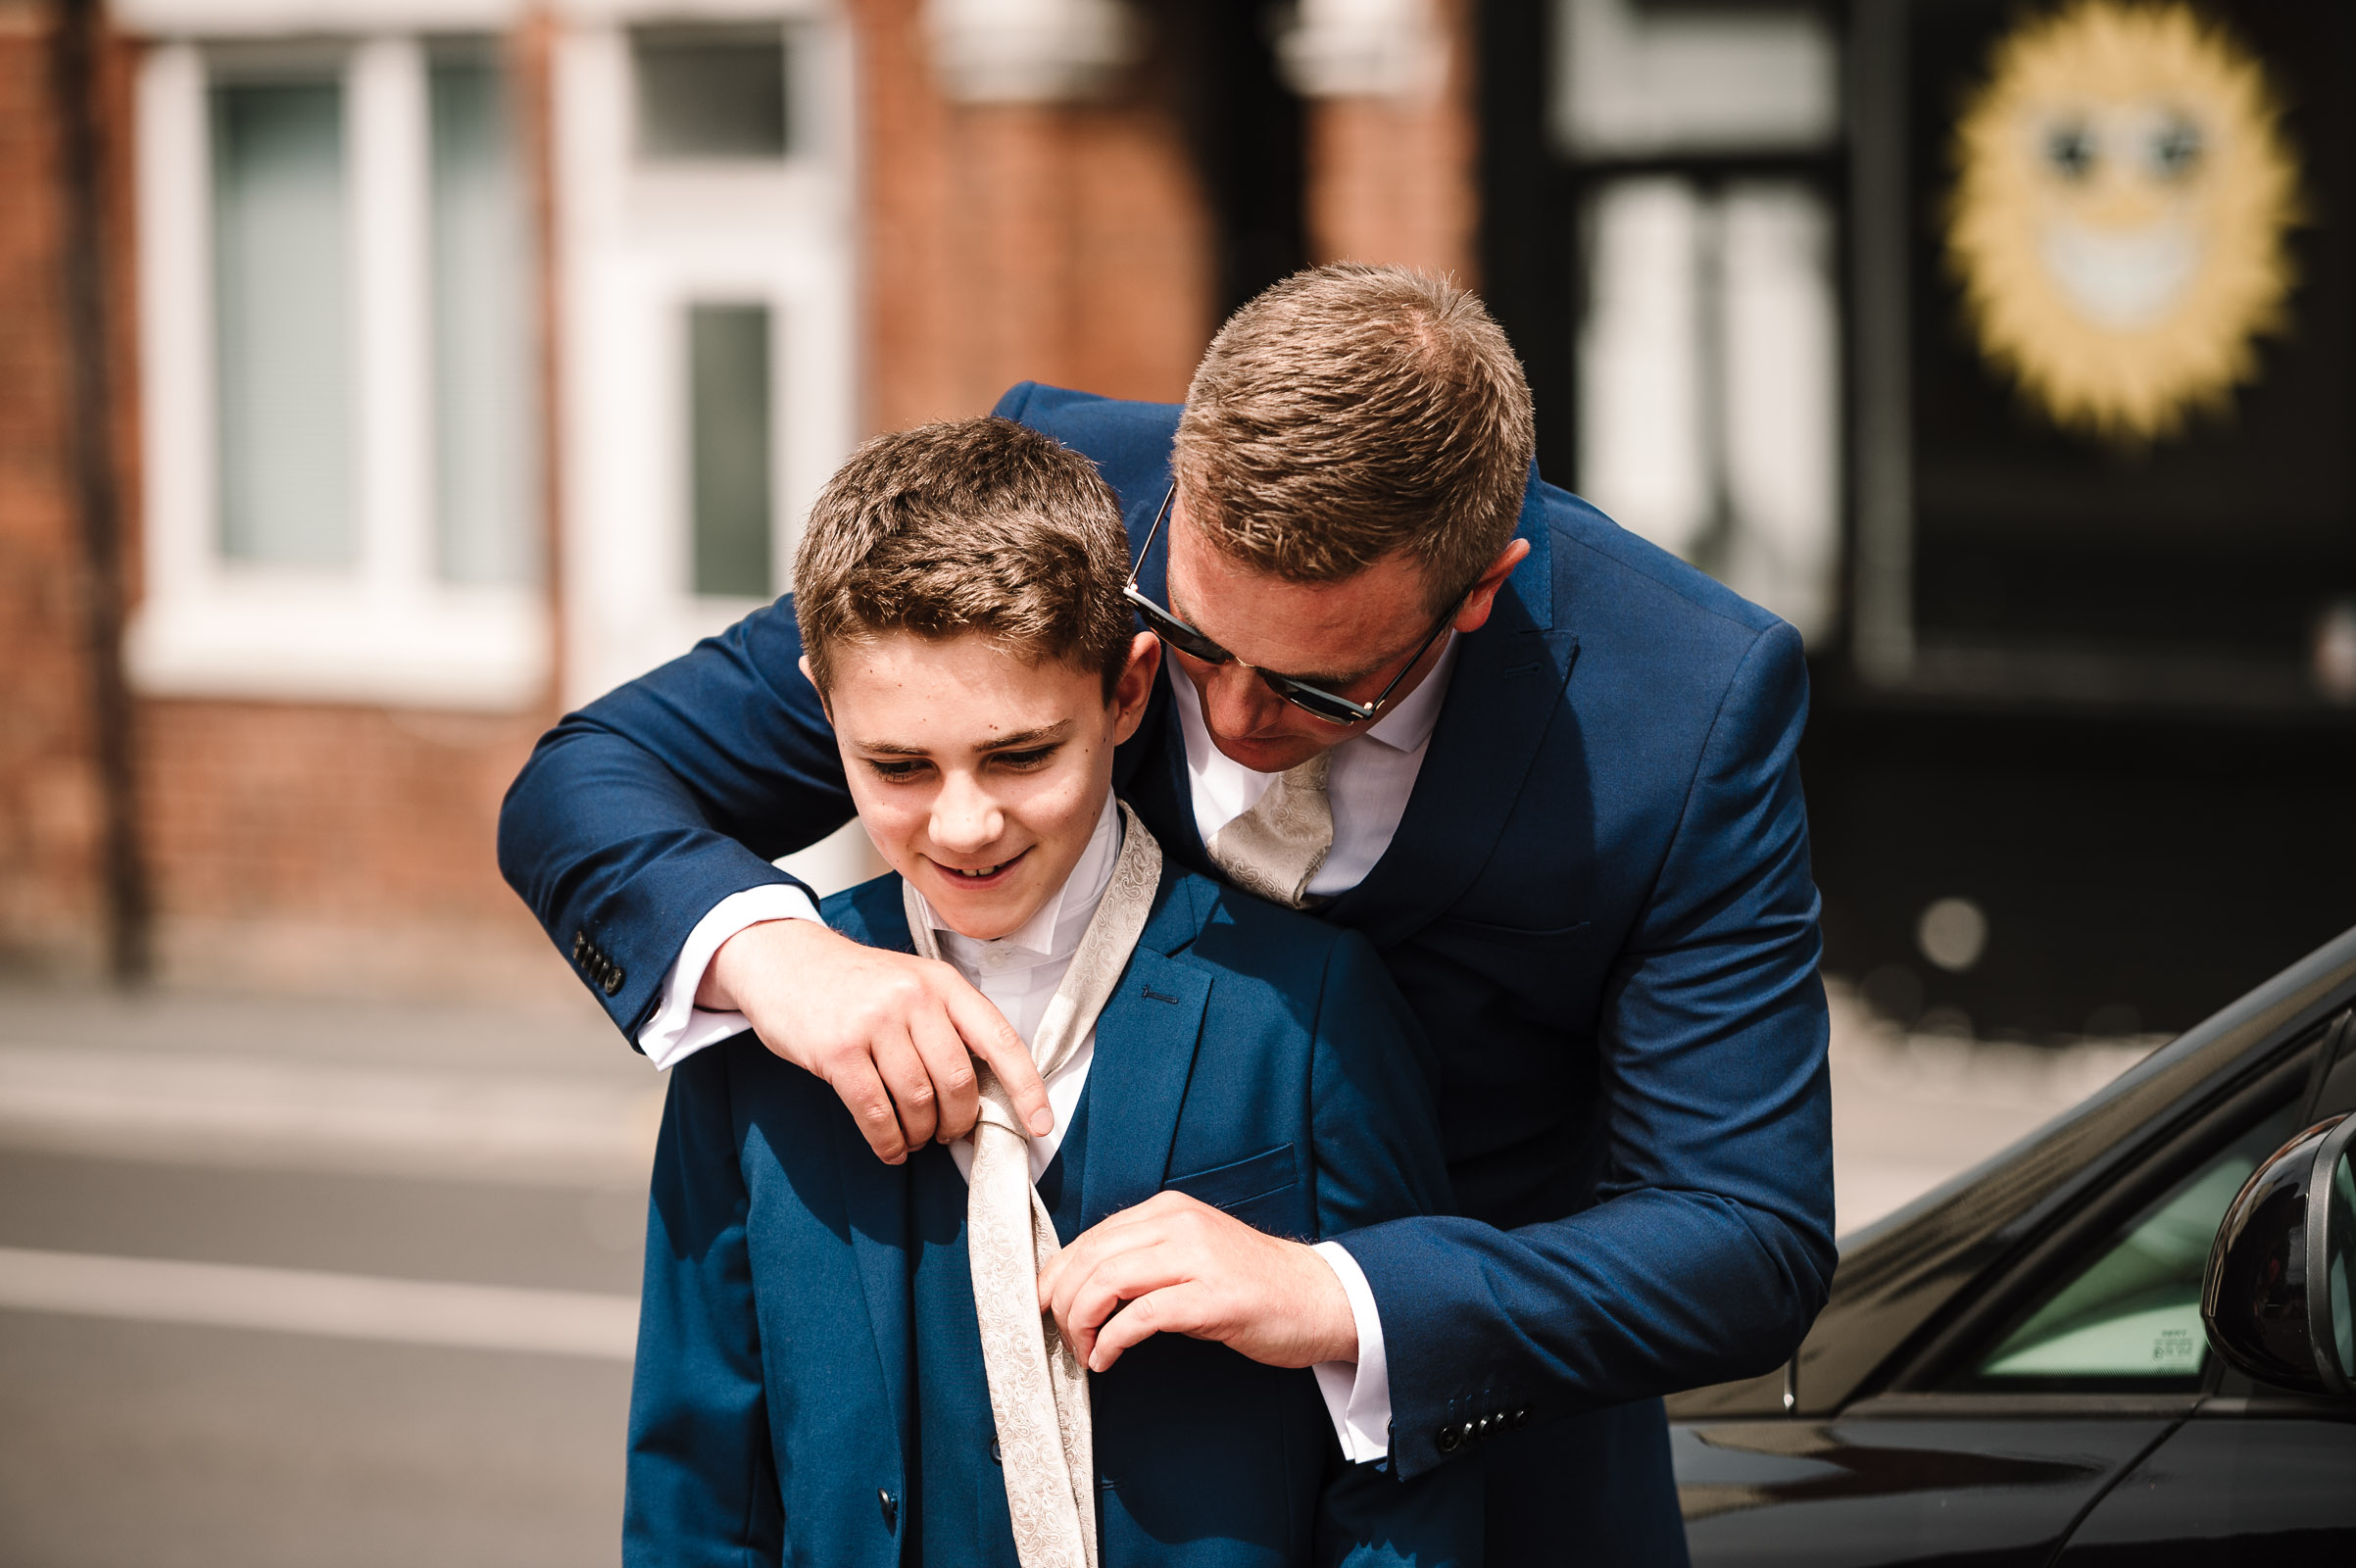 groom doing up tie on younger guest